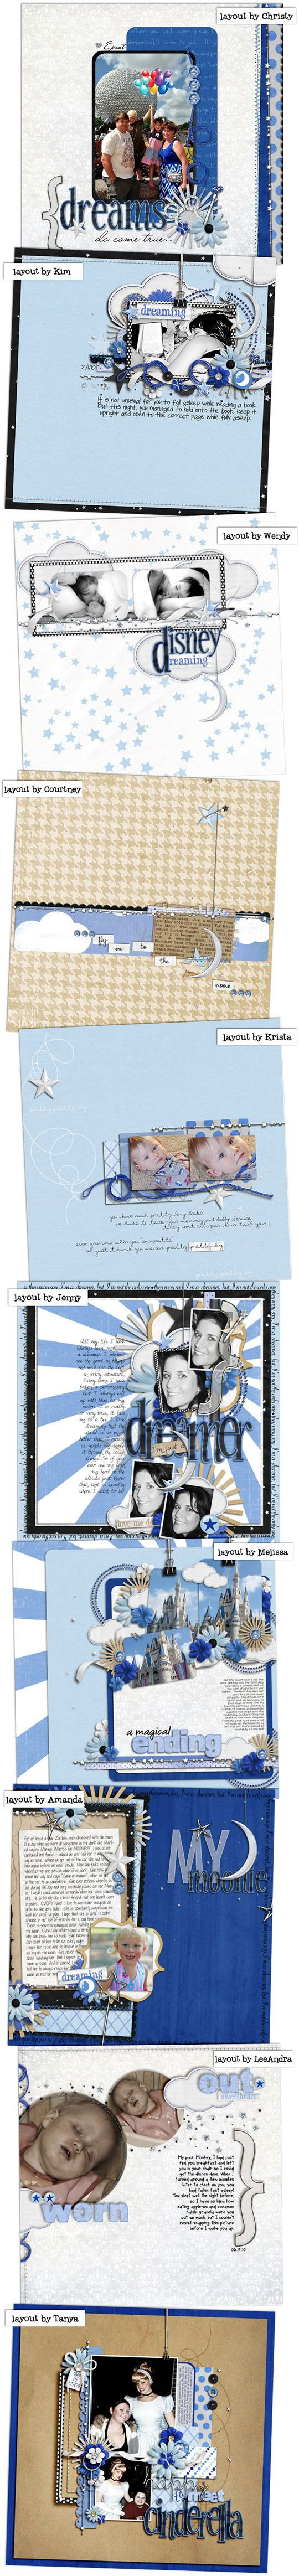 Cute Home to digital scrapbook designer Brittney Leavitt aka Britt Britt shares digital scrapbooking